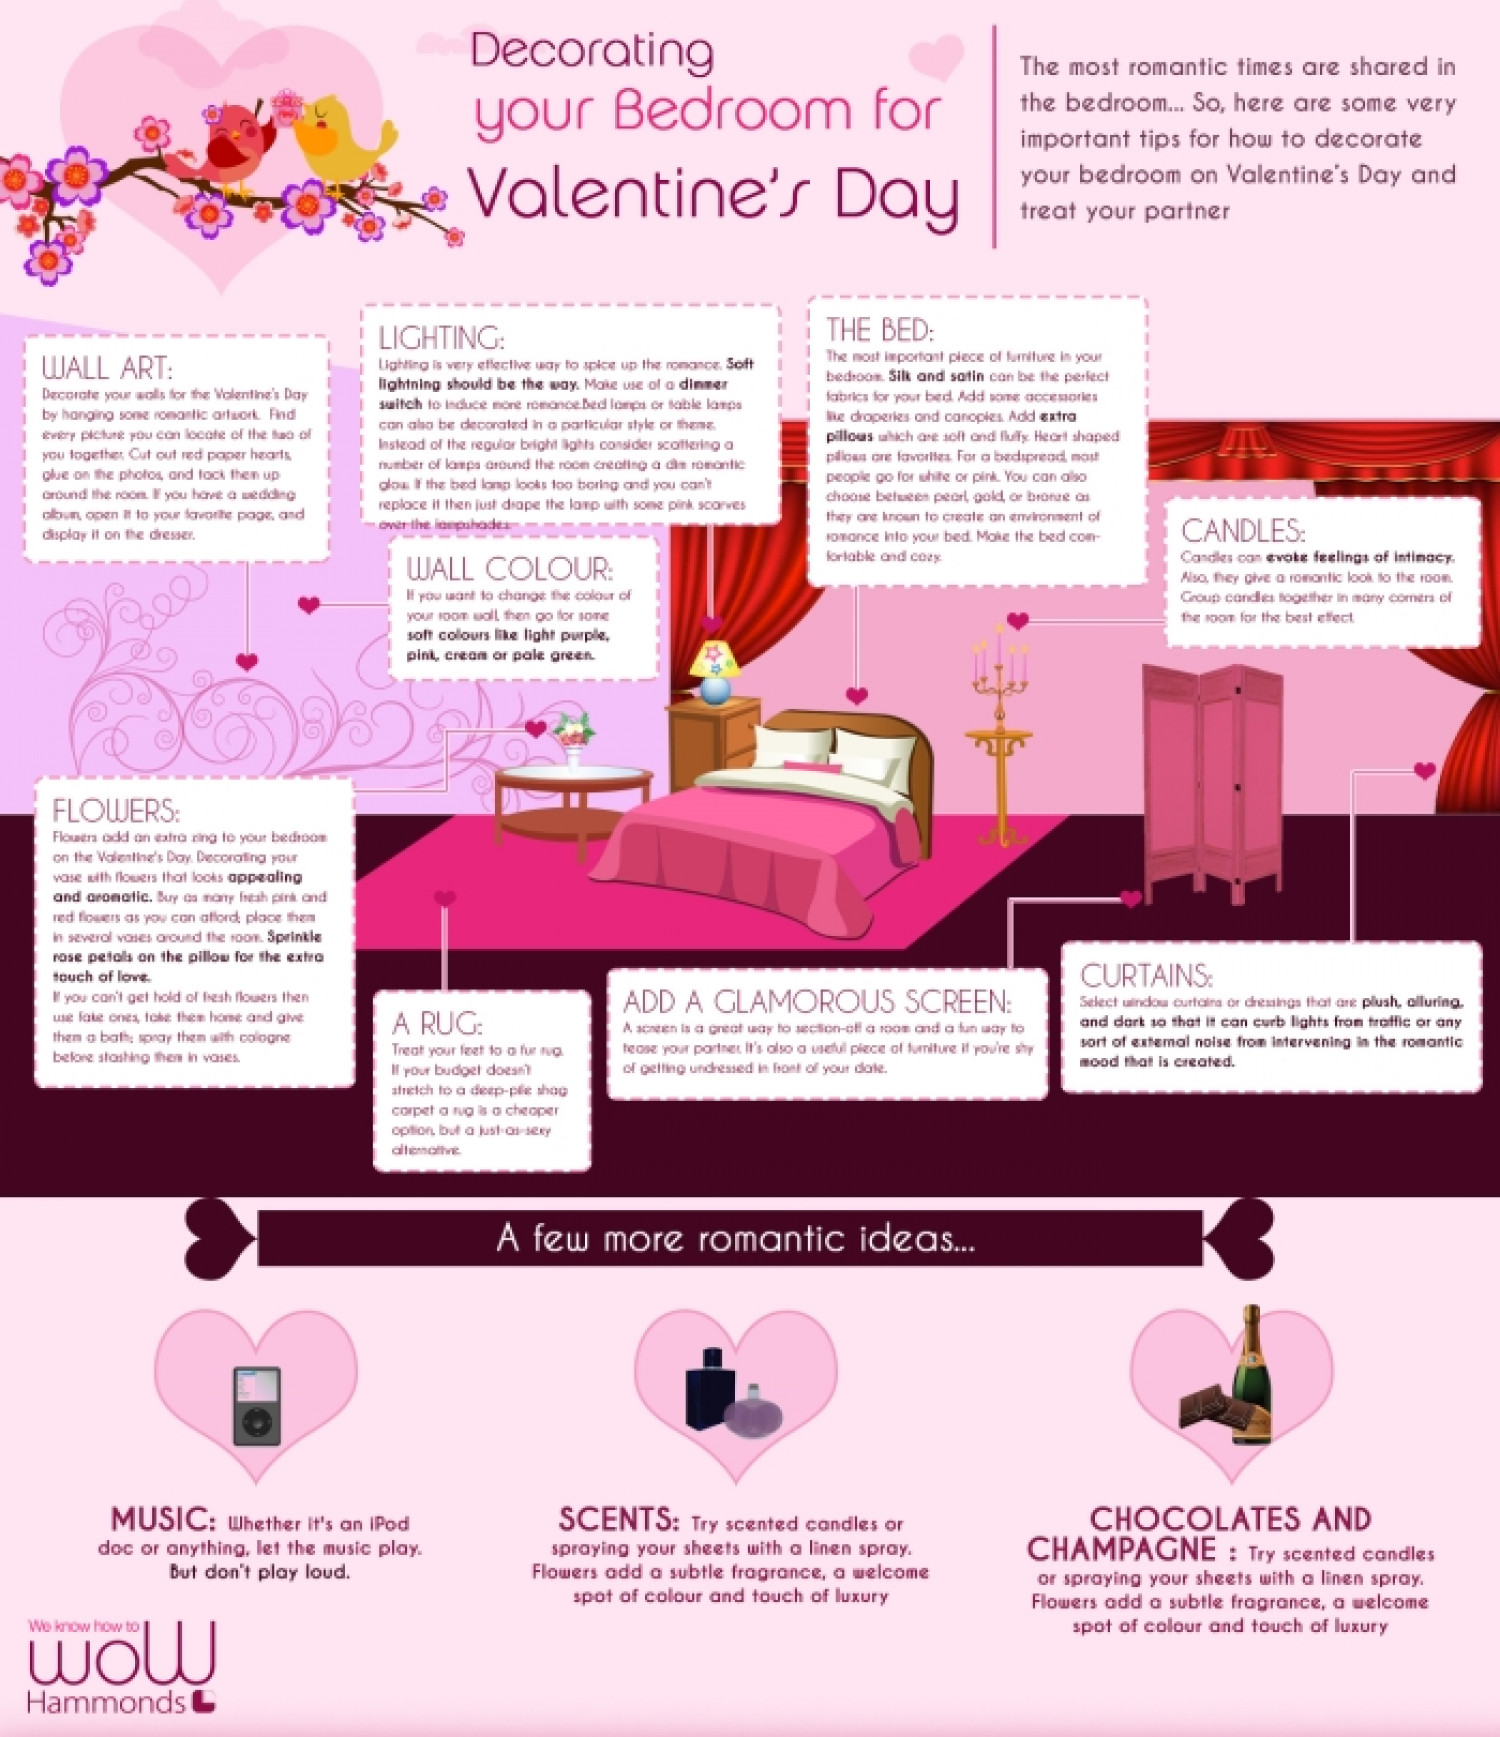 Decorating your Bedroom for Valentine's Day Infographic